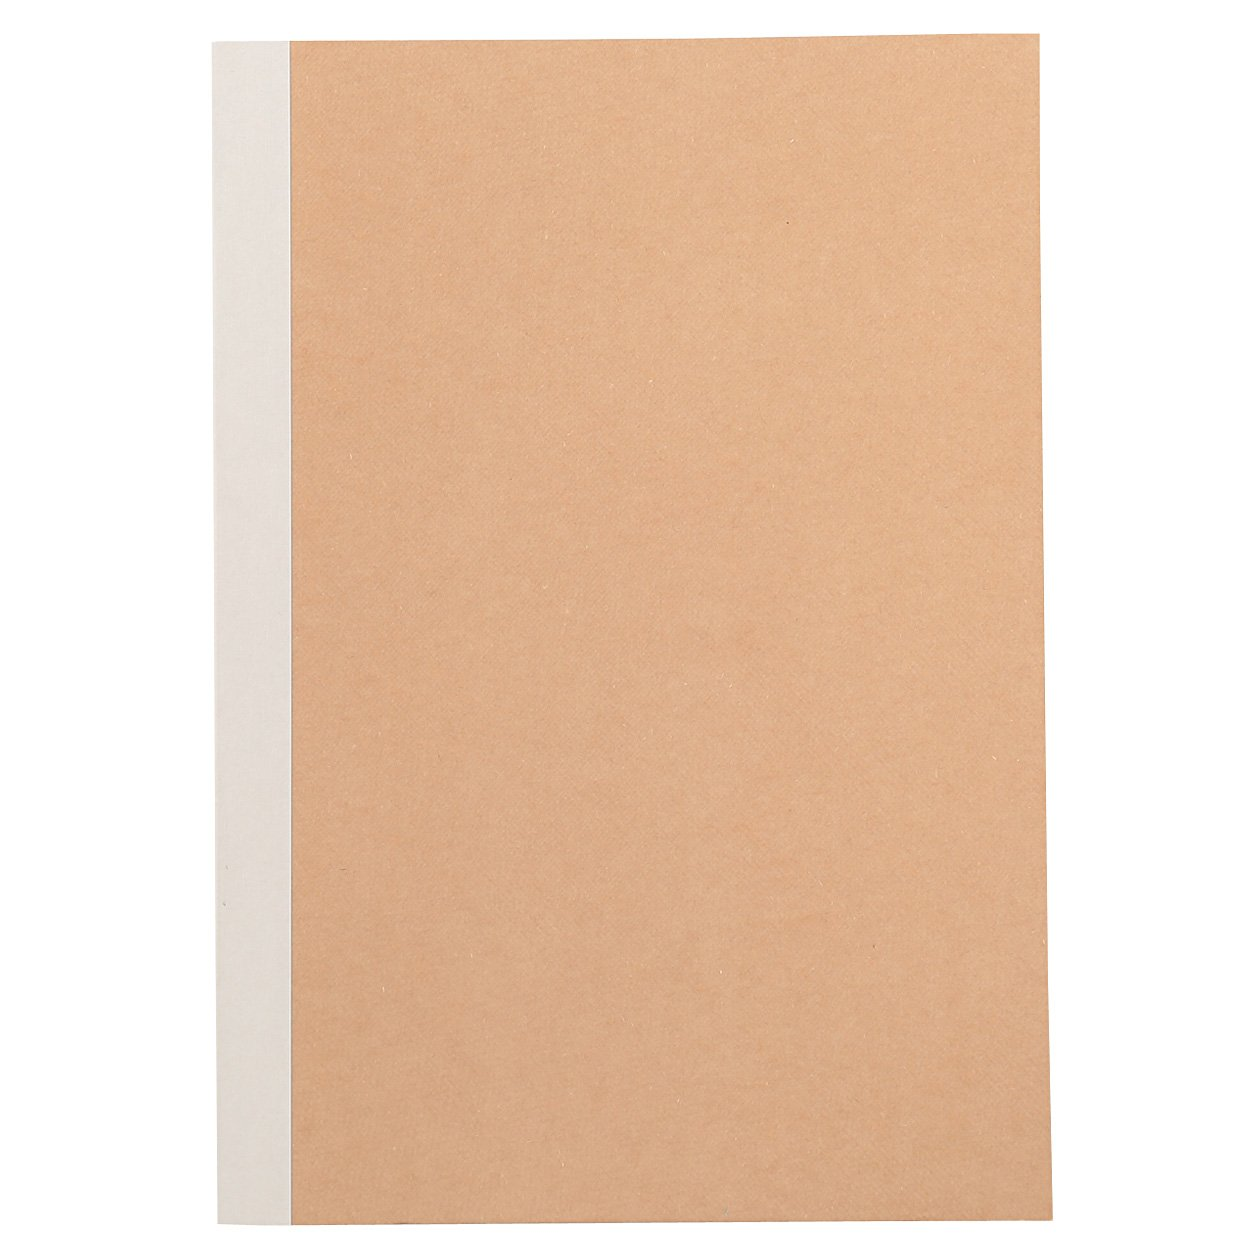 Muji fountain pen friendly notebooks